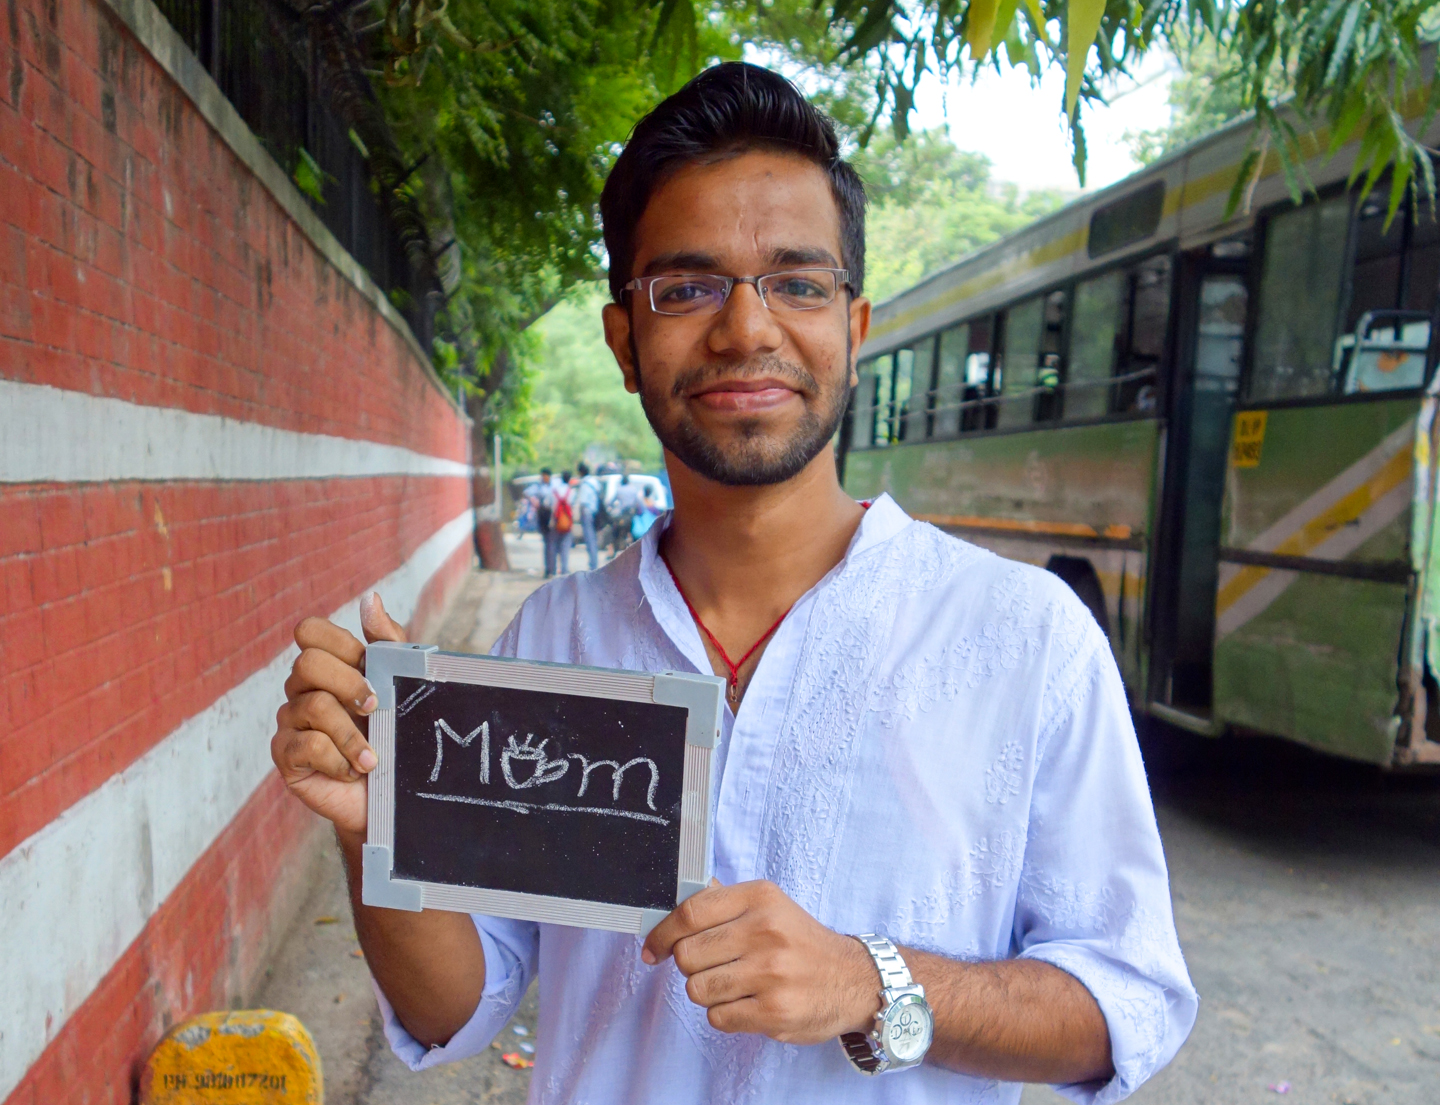 For Priyesh, a college student in New Delhi, chai evokes thoughts of the woman who makes his favorite cup - his mom.